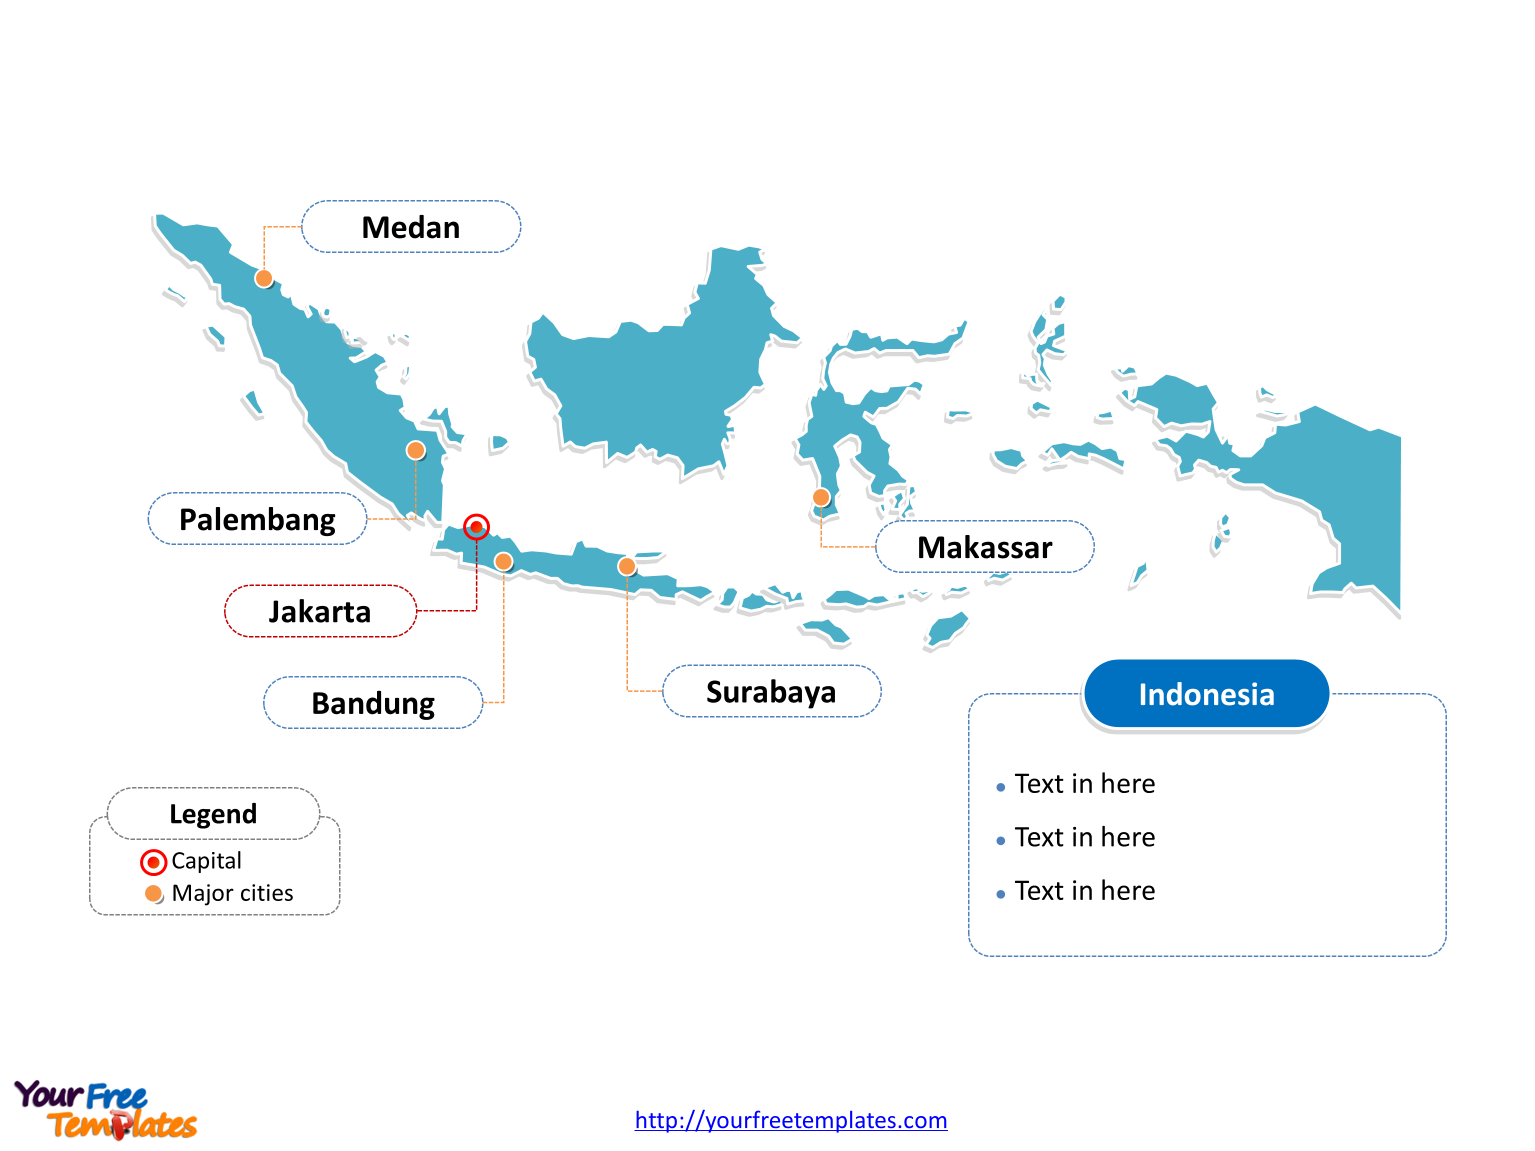 Free indonesia editable map free powerpoint templates indonesia outline map labeled with cities gumiabroncs Gallery